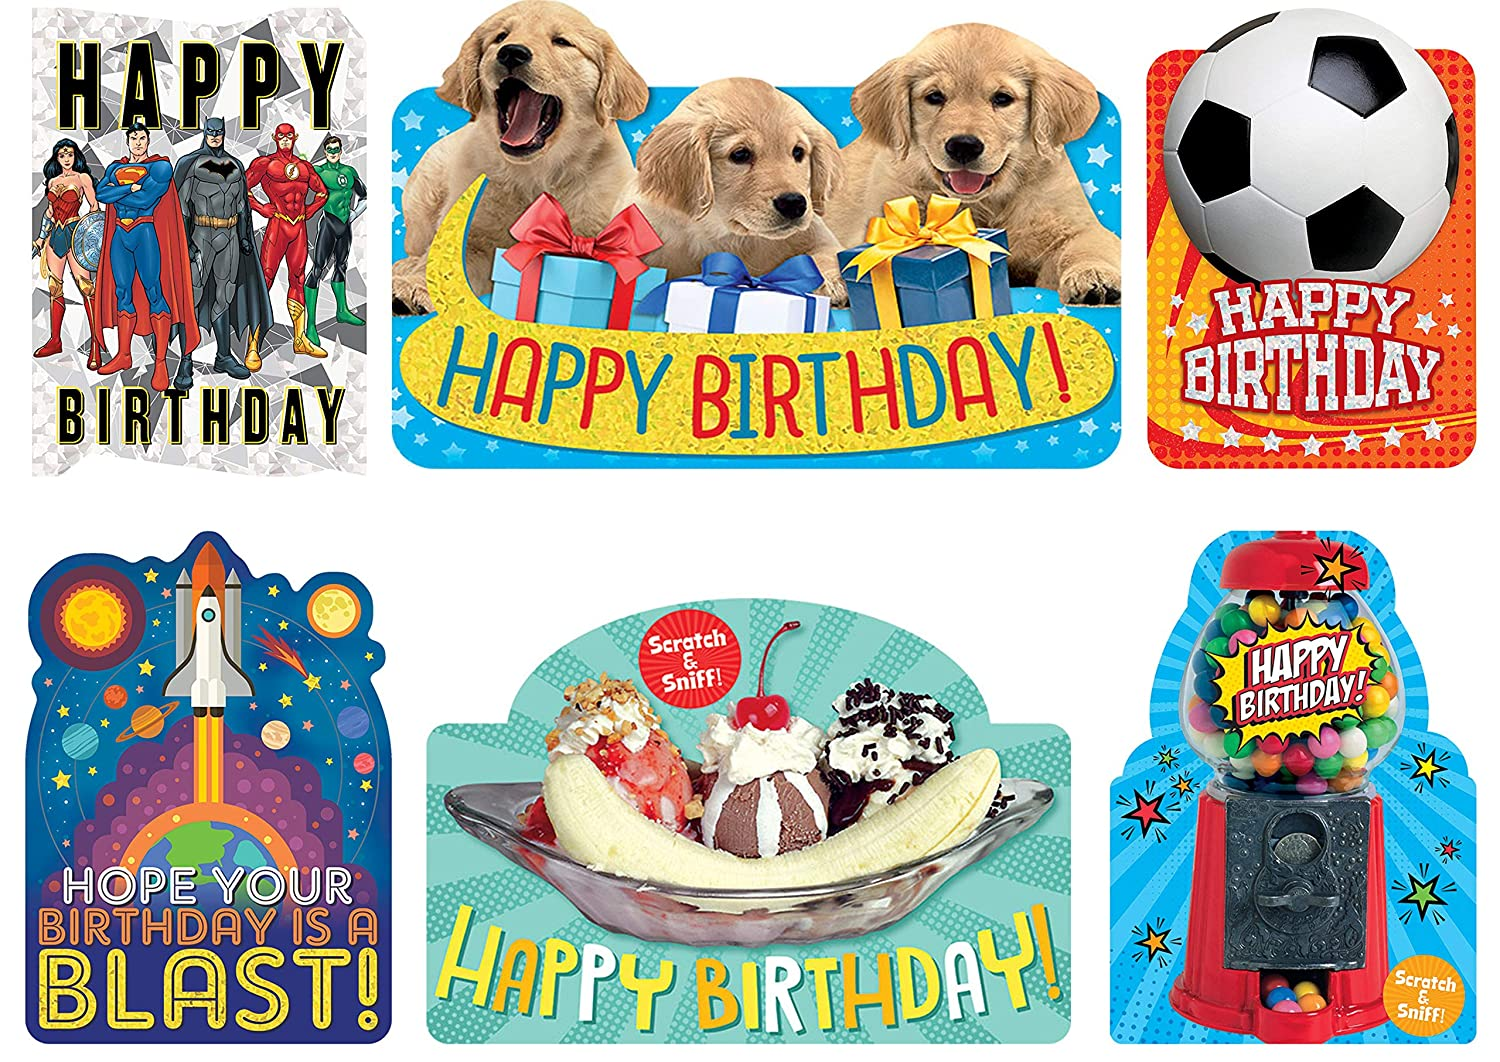 Playhouse Crazy Cool Birthday Card 6 Pack Includes Envelopes